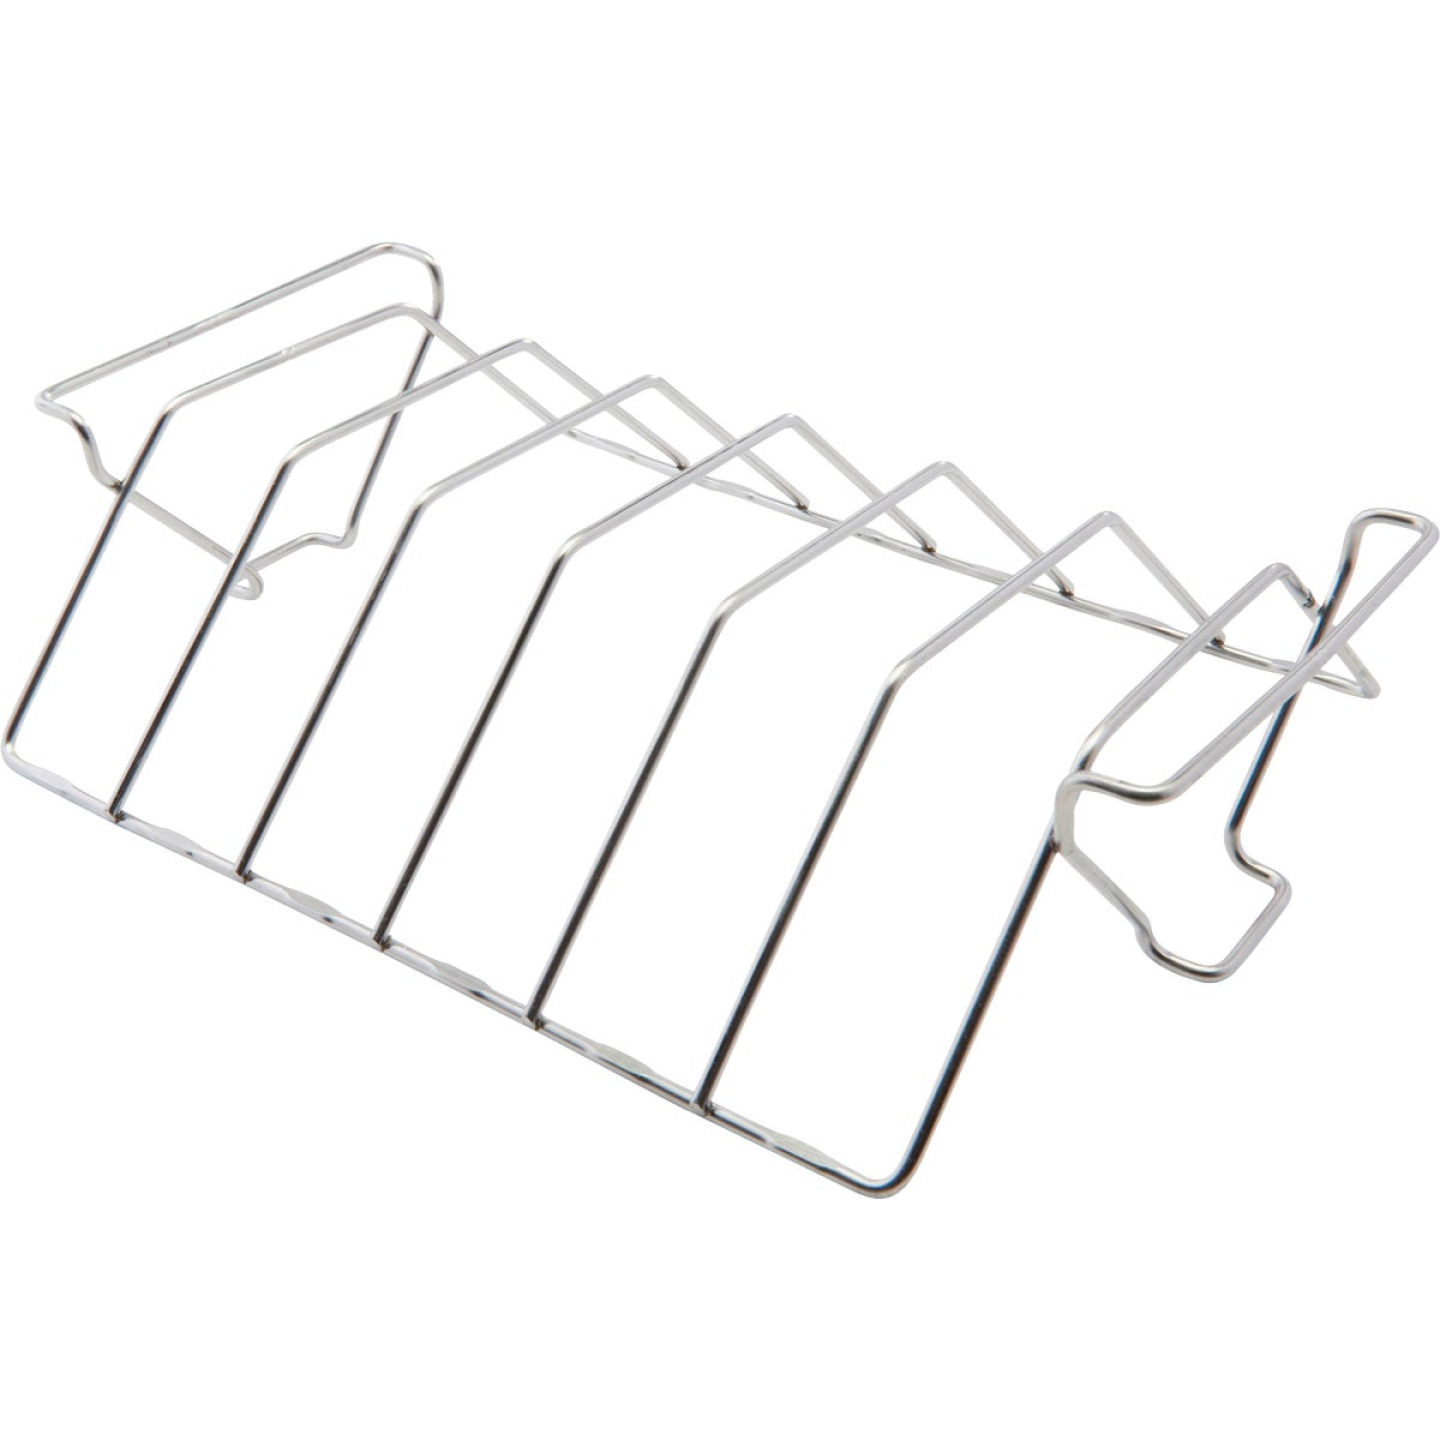 GrillPro 15.5 In. Stainless Steel Rib & Roast Grill Rack Image 1